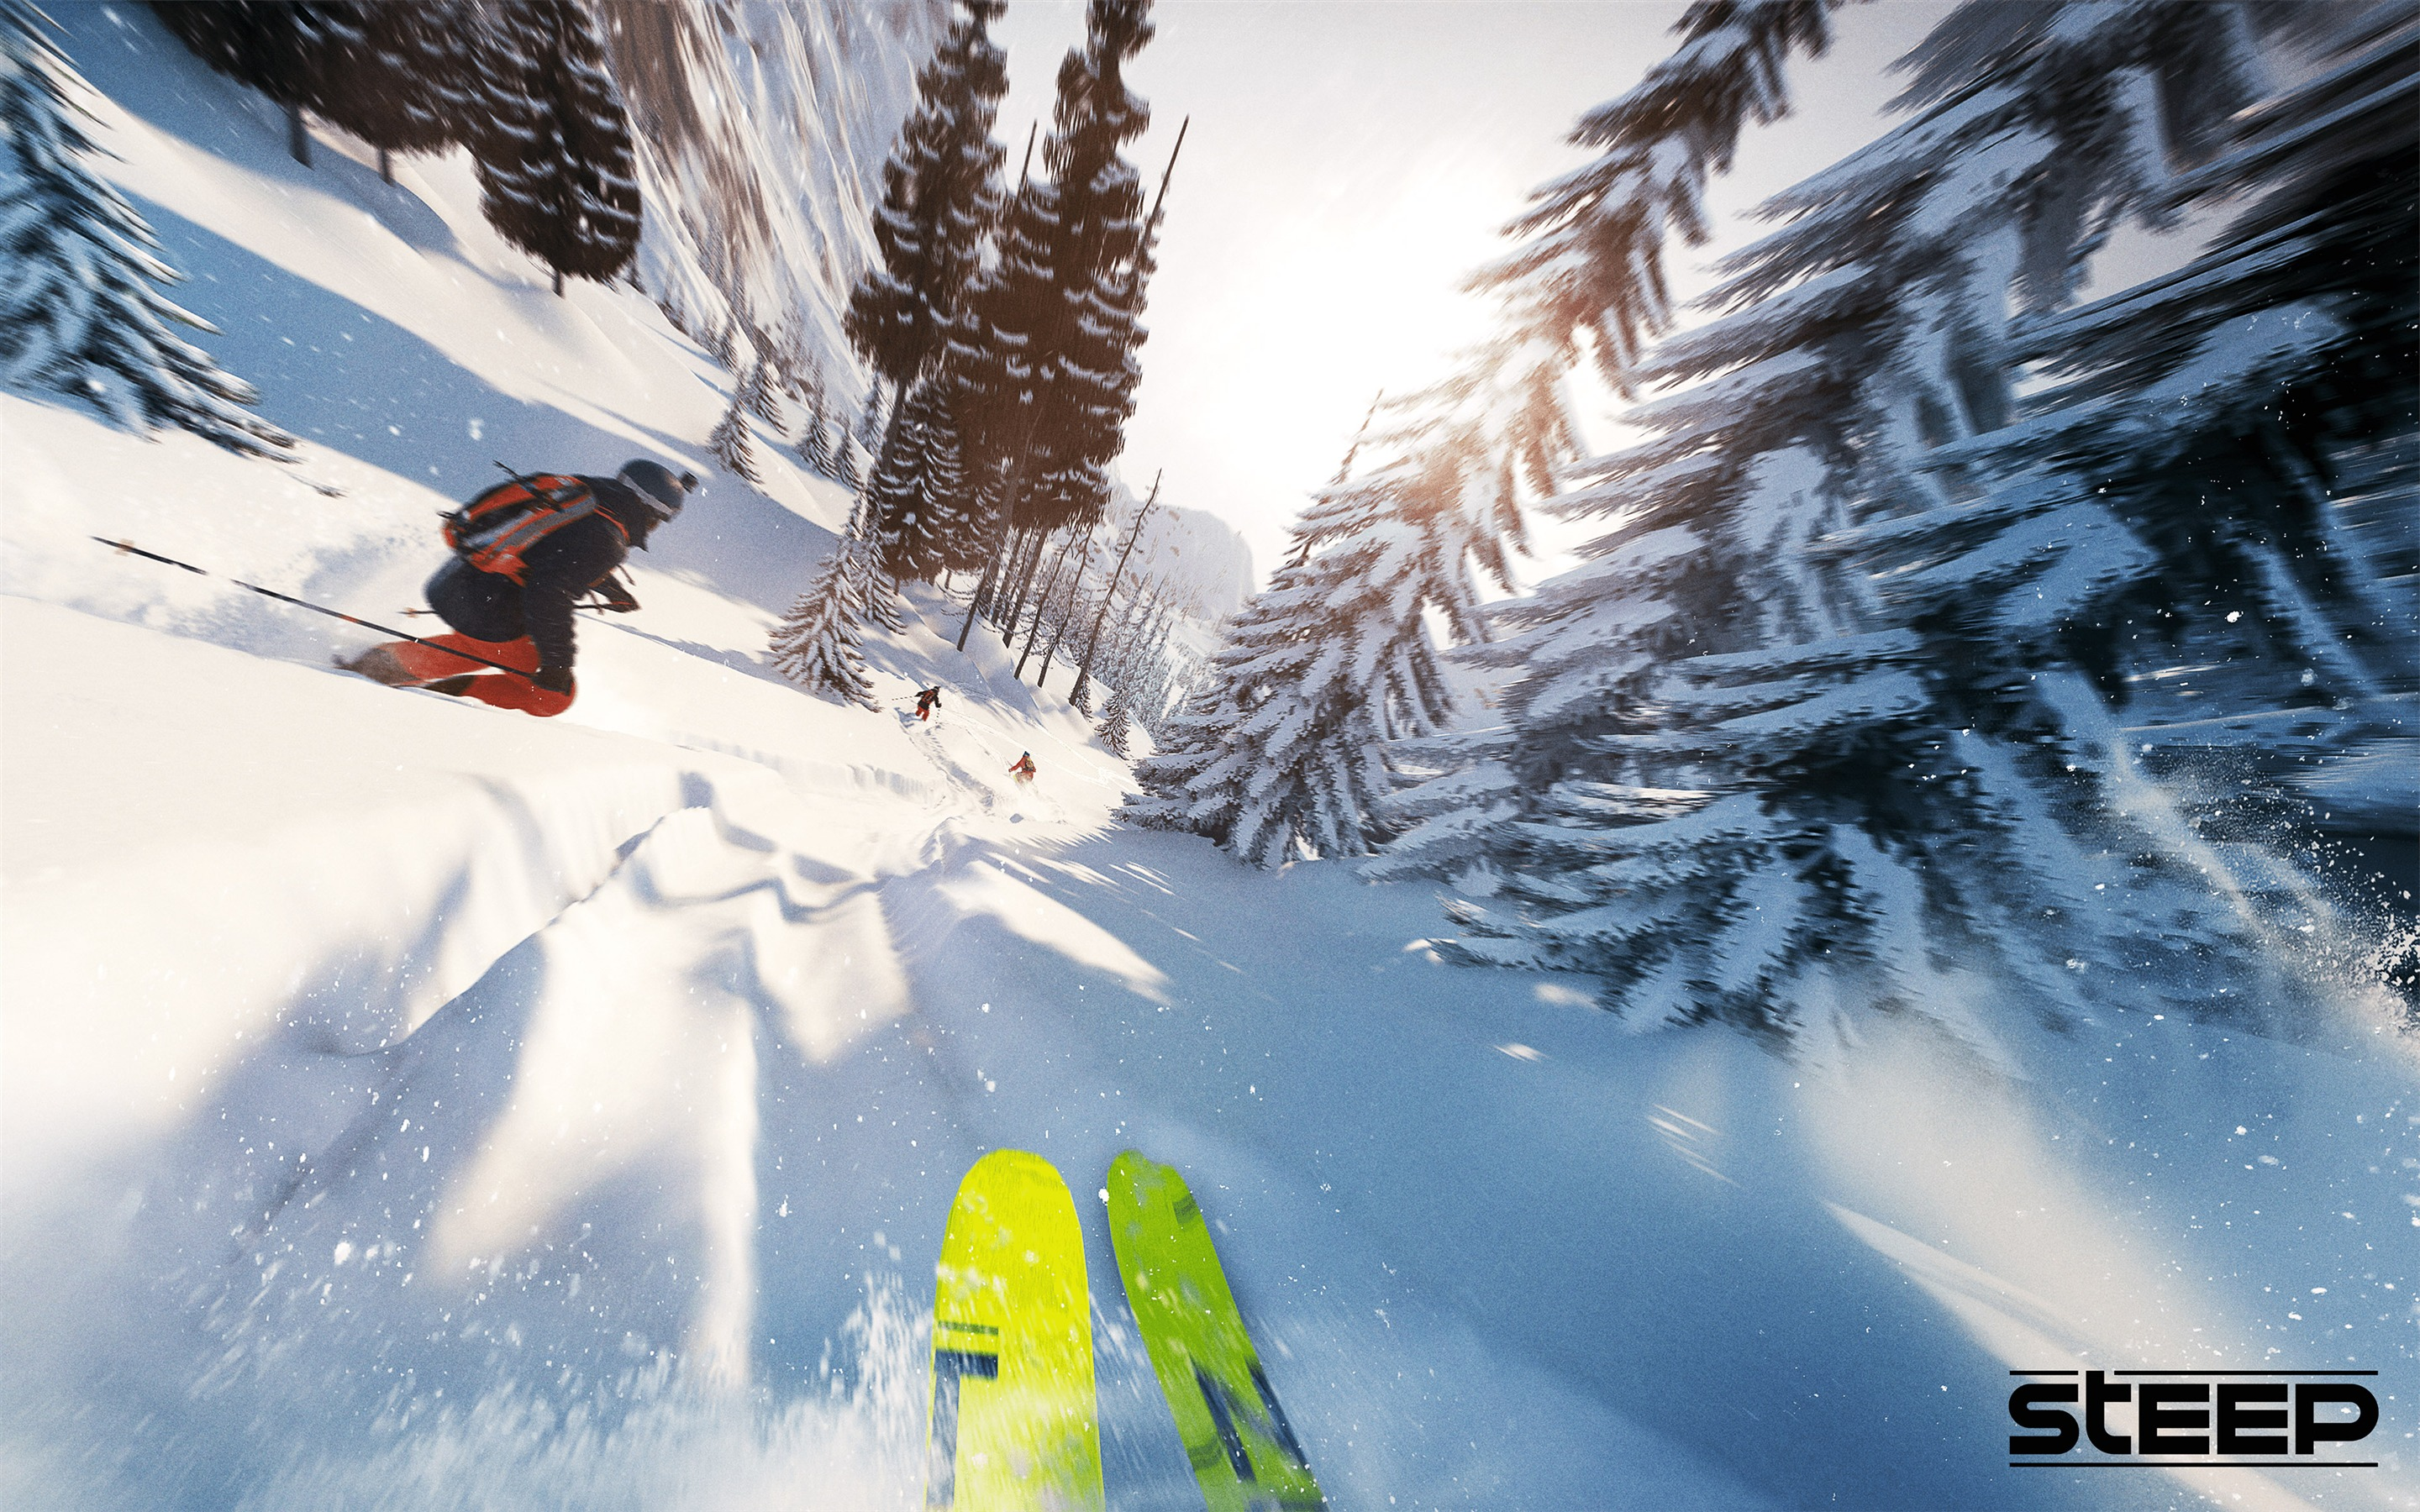 Ski competition Steep Game 4K - 2880x1800 wallpaper download